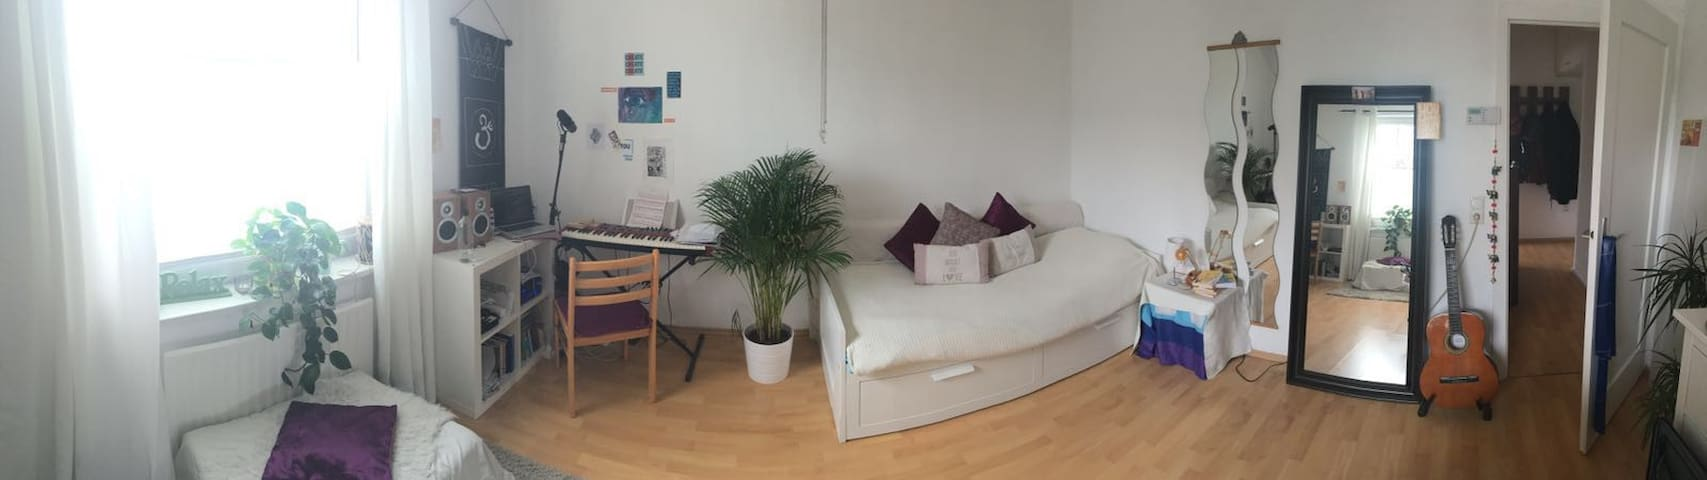 Cosy apartment in beautiful and central area - Salzburg - Wohnung